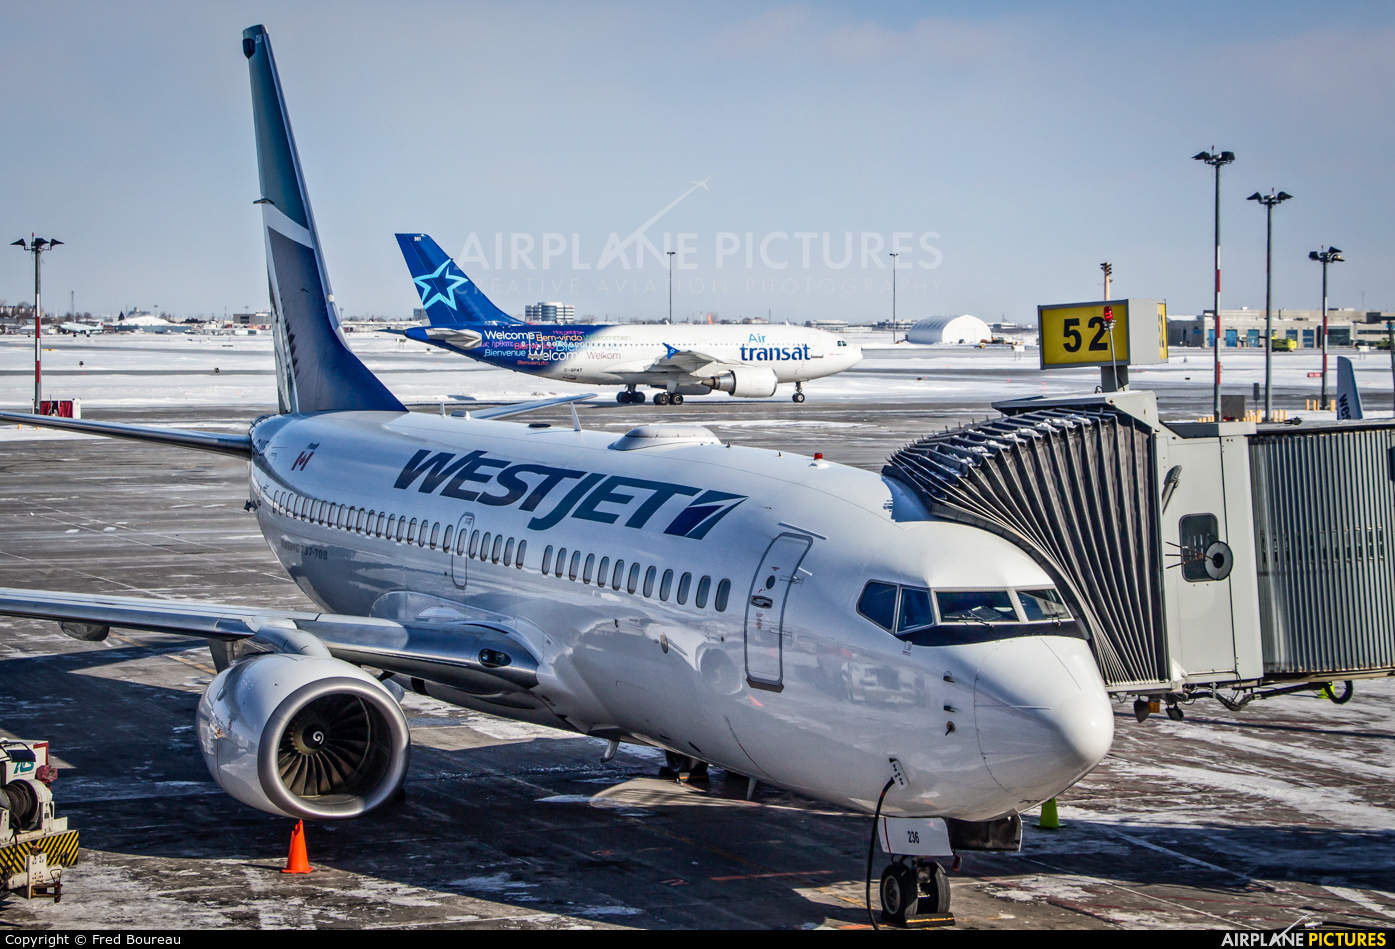 WestJet launches flights to London from 6 Canadian cities this week